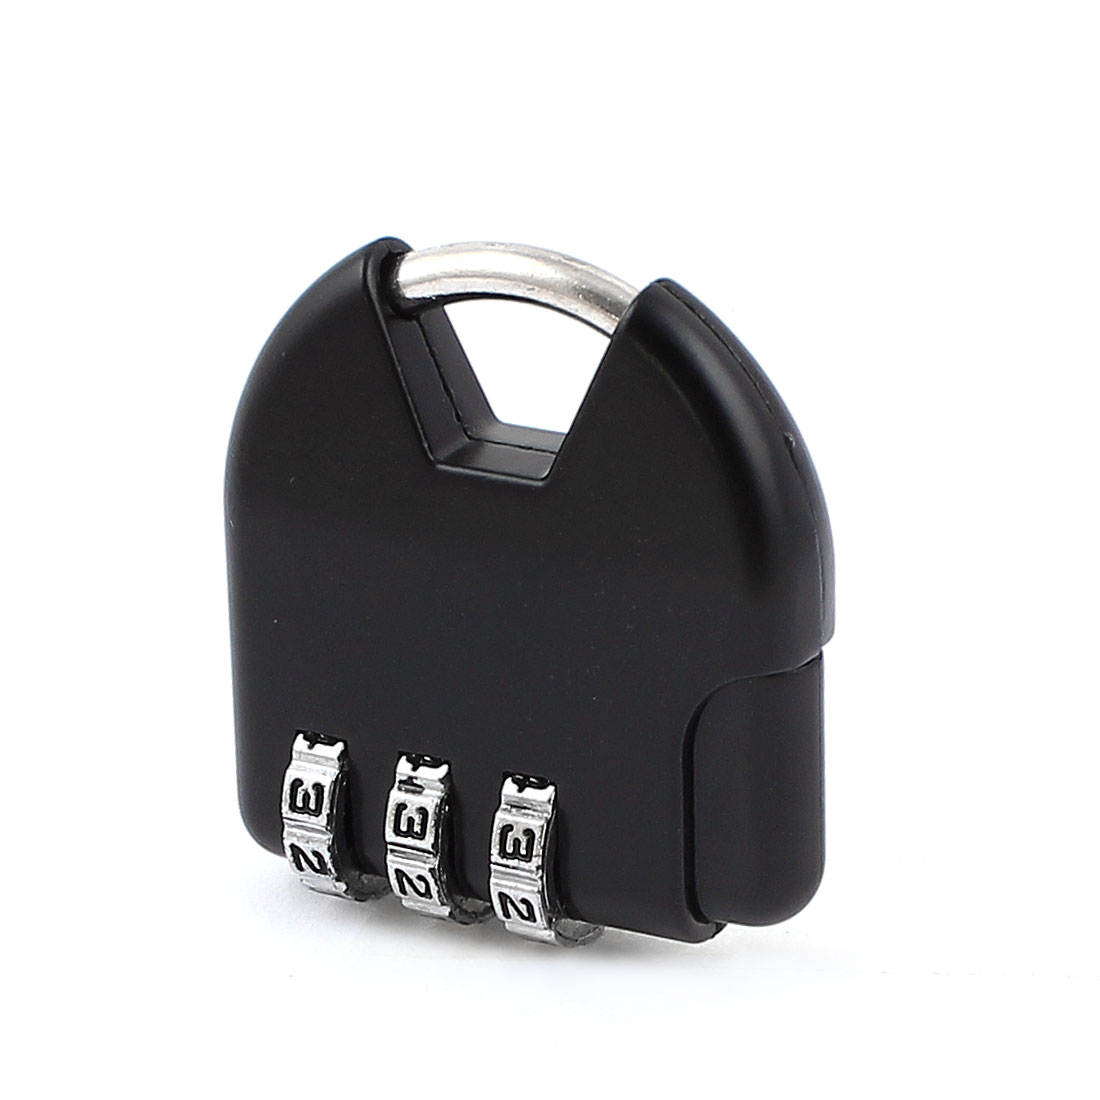 Suitcase Resettable 3 Digits Combination Password Safety Padlock Black